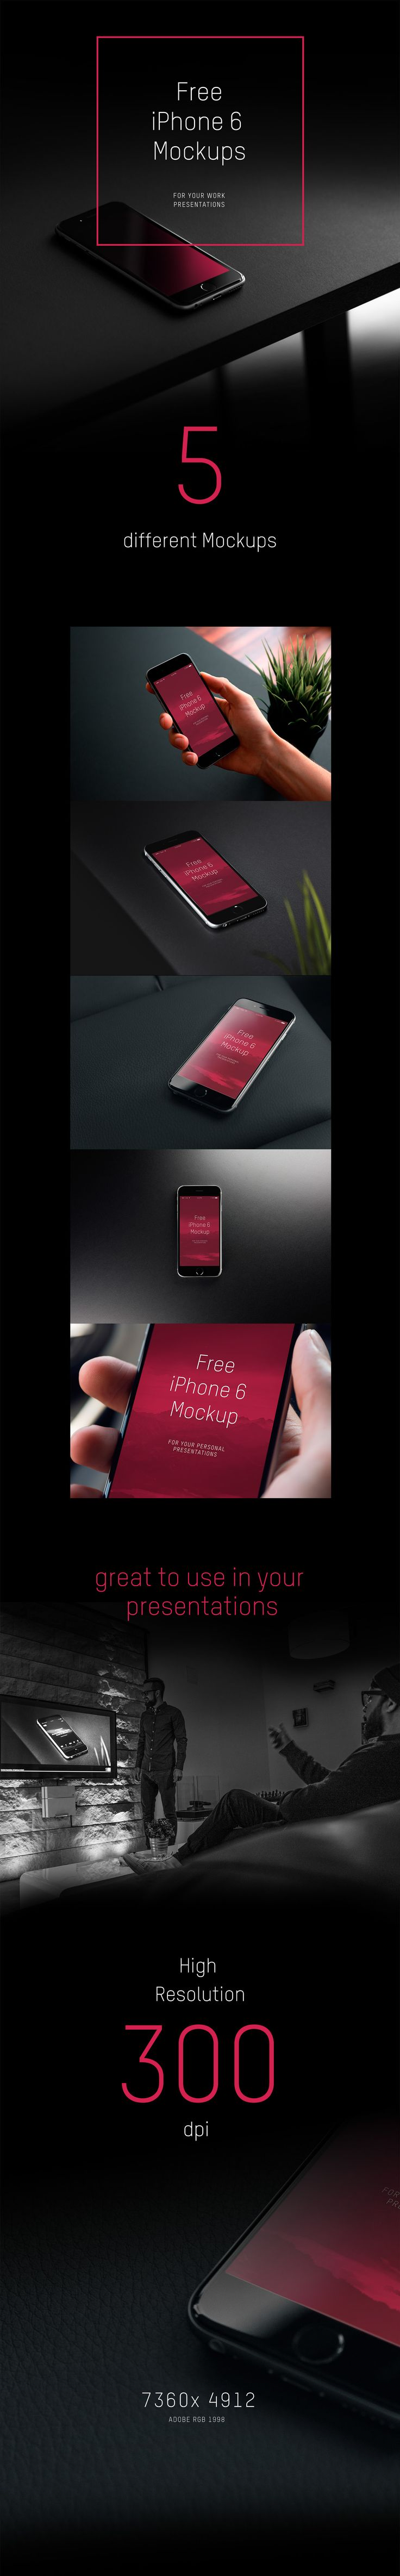 Free High-Res iPhone 6 Mockups for you.